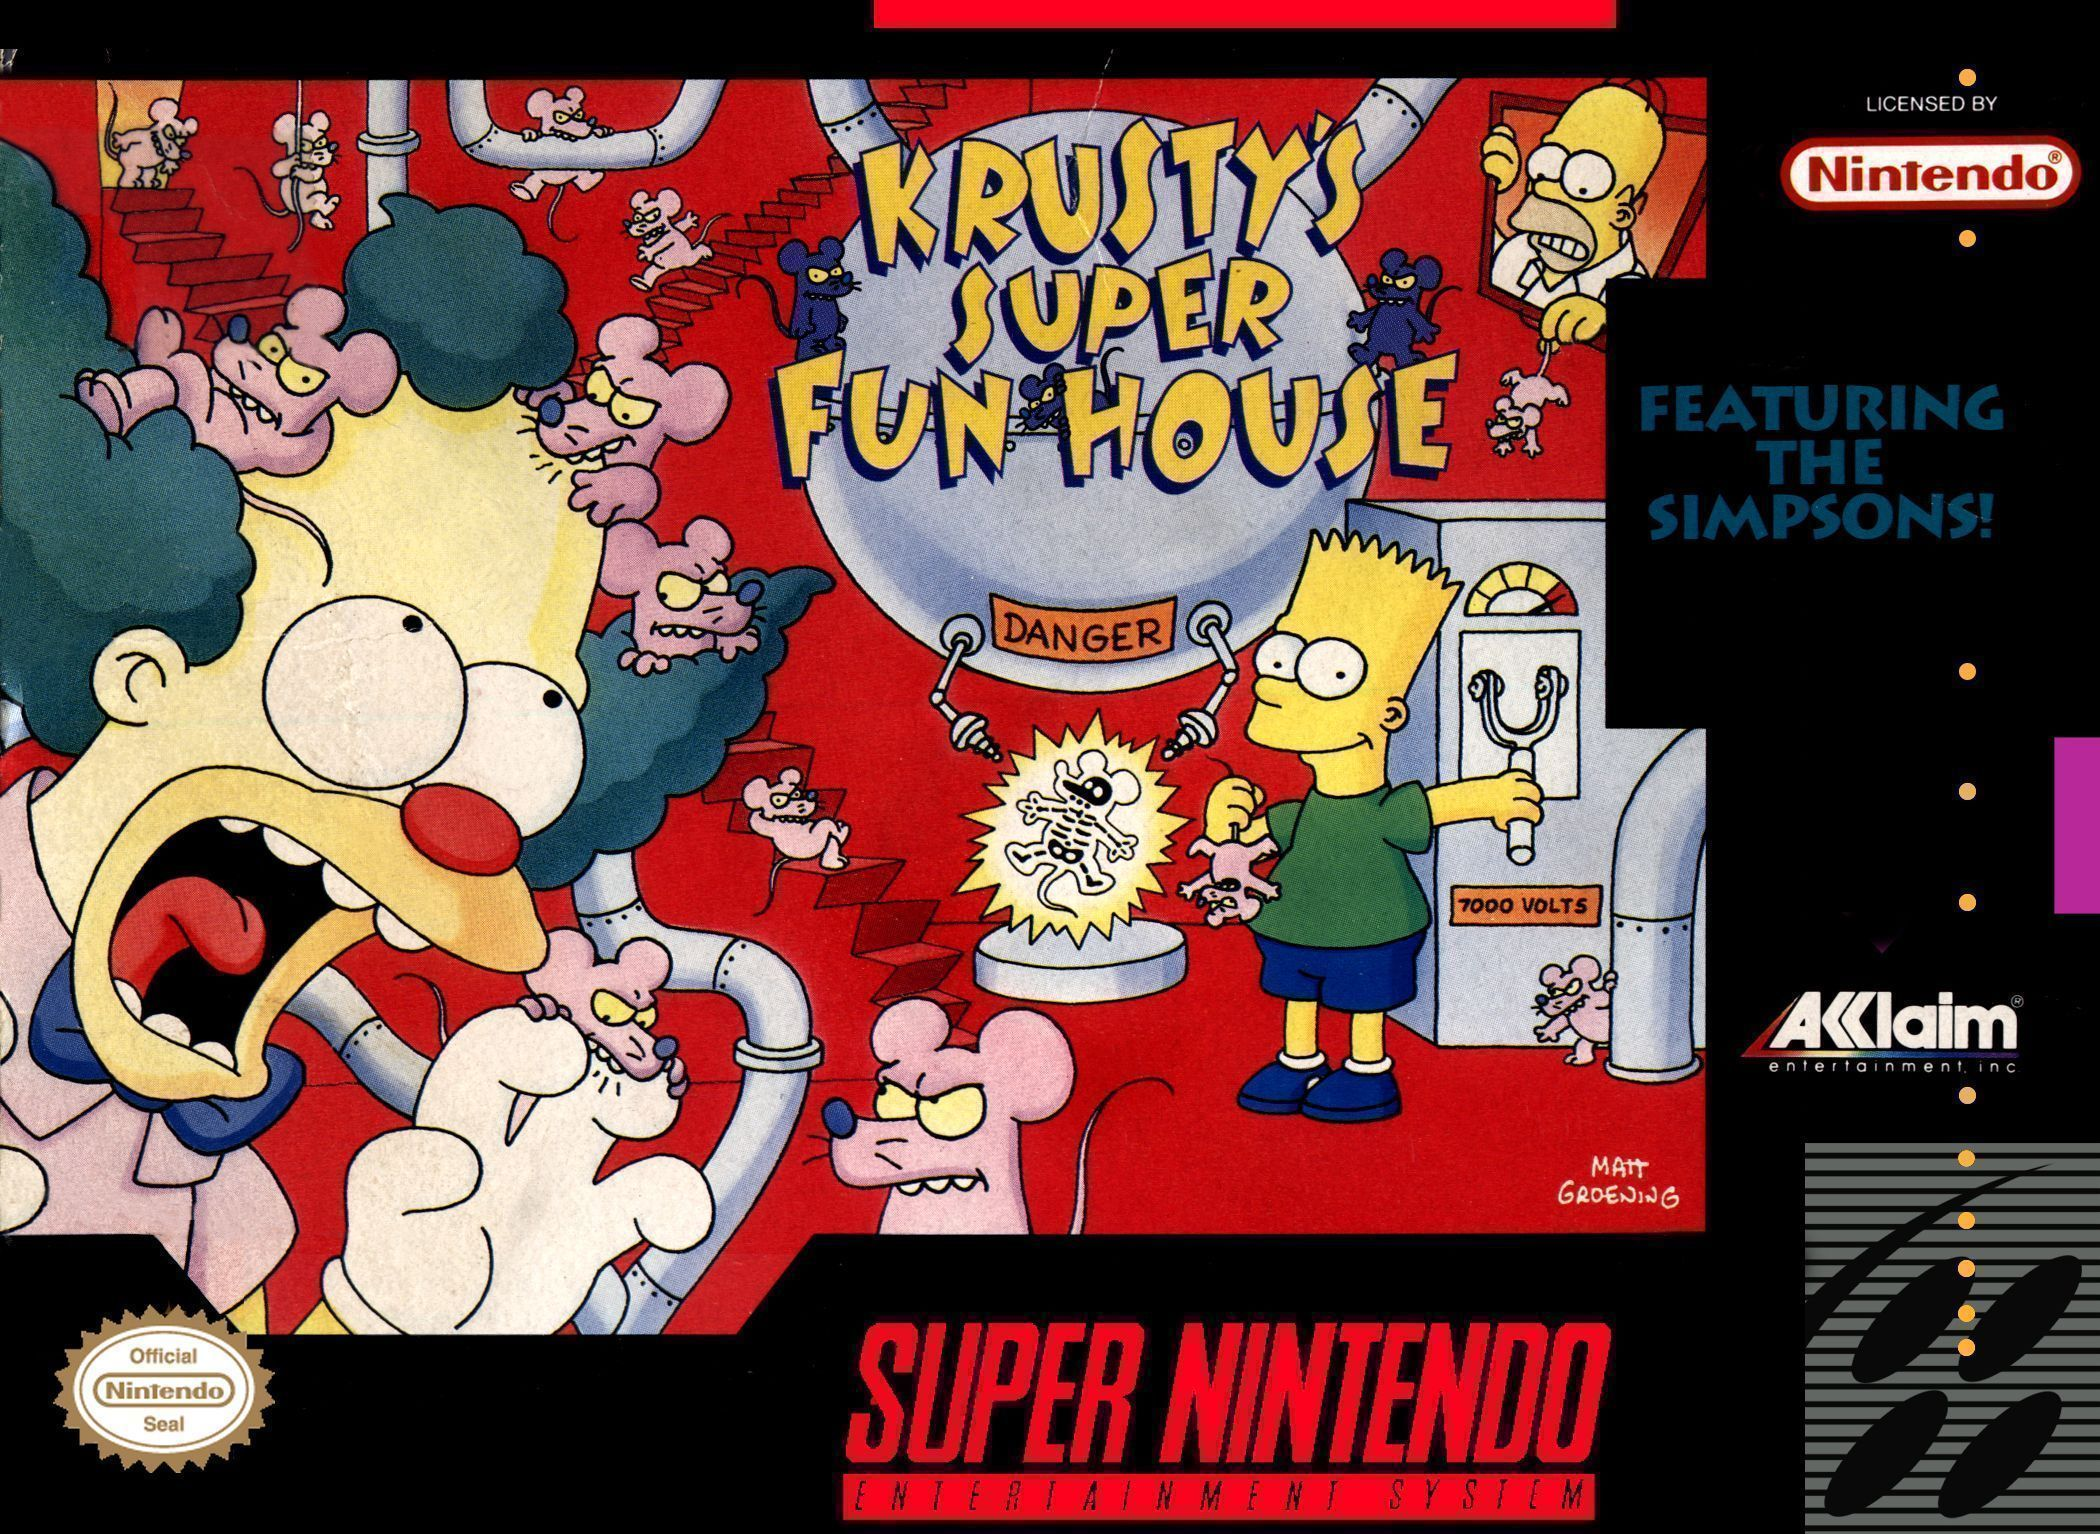 Rom juego Simpsons, The - Krusty's Super Fun House